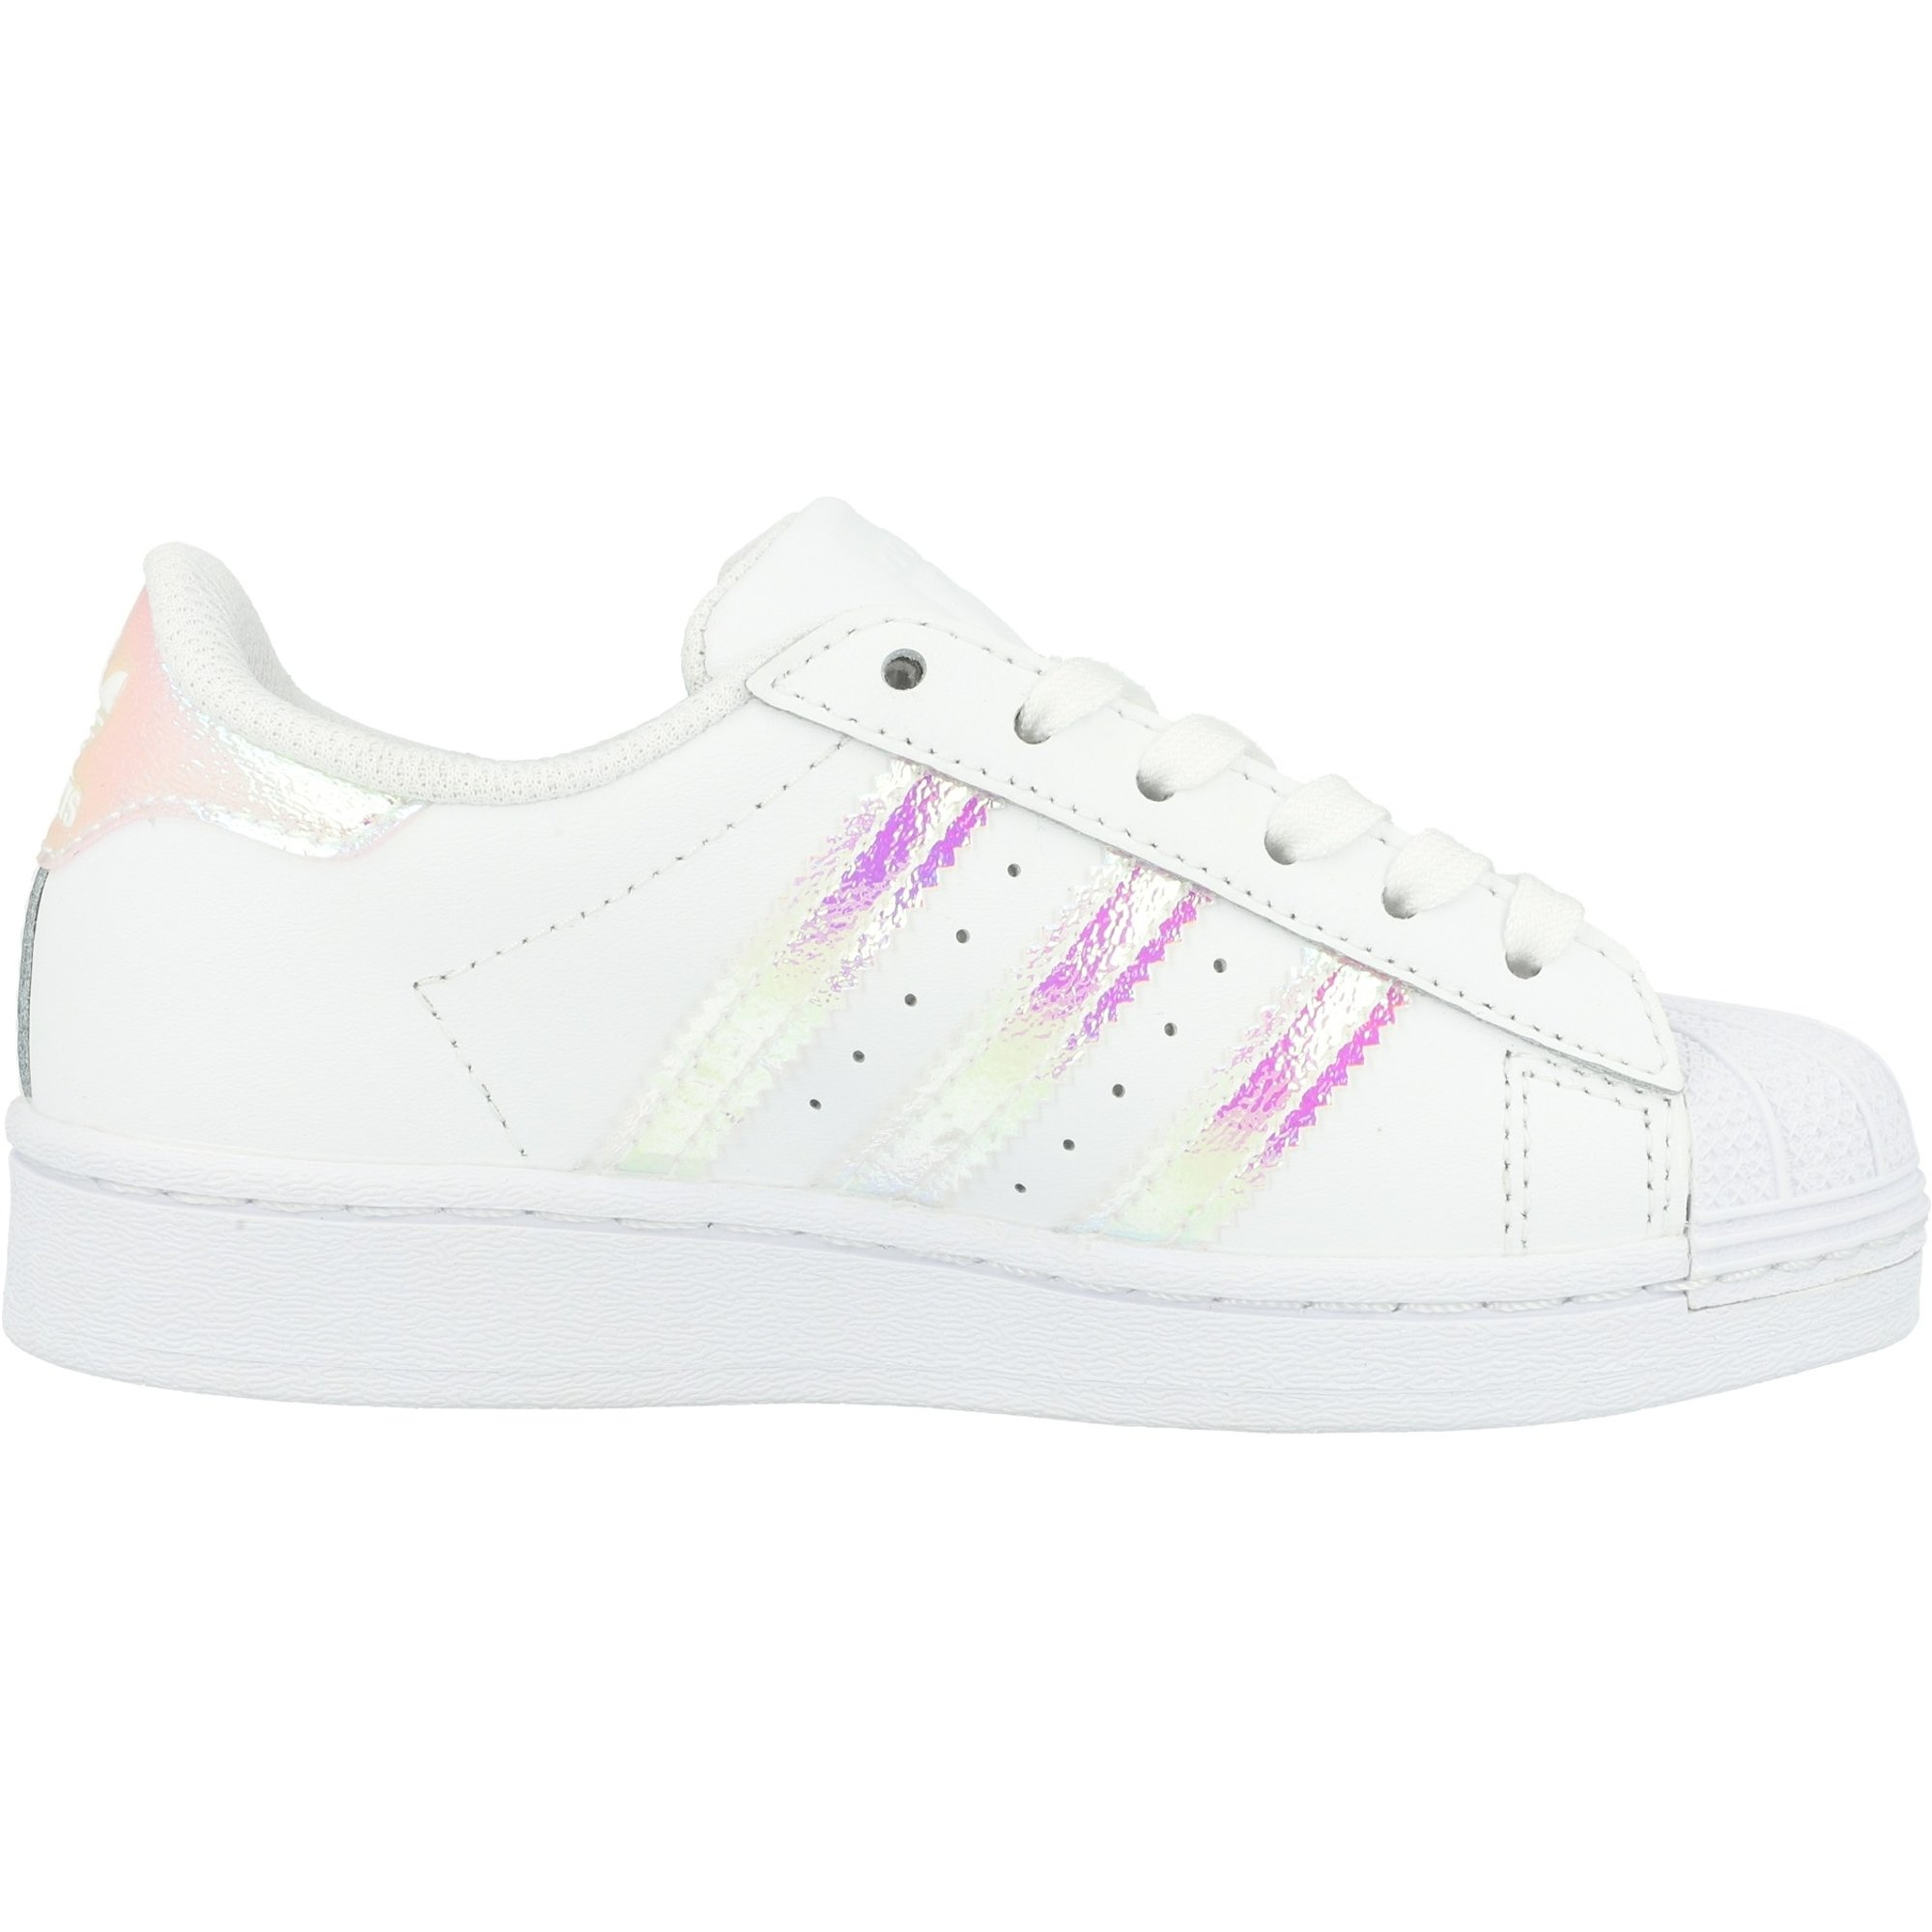 adidas Originals Superstar C White Leather